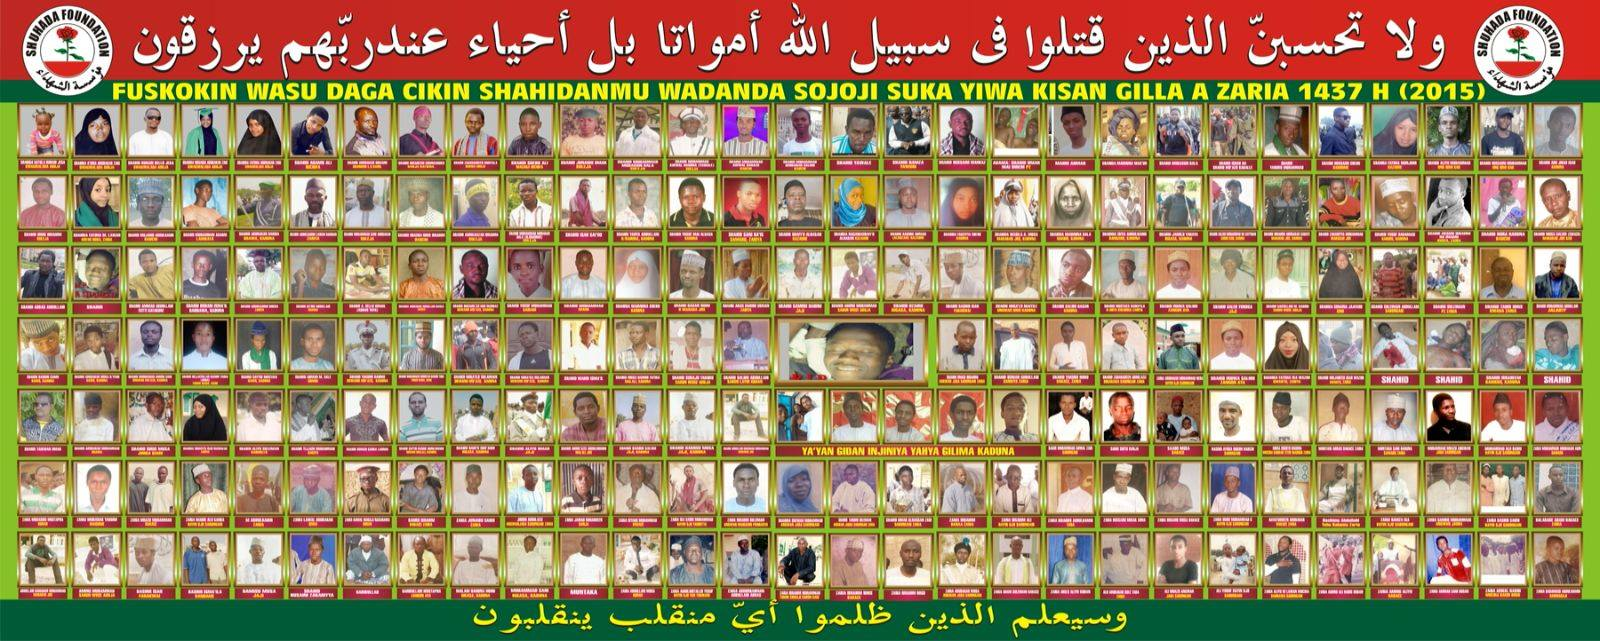 #WhereIsICC: Shi'ite Sect Declares 705 Members Missing , Releases Full List, Pictures